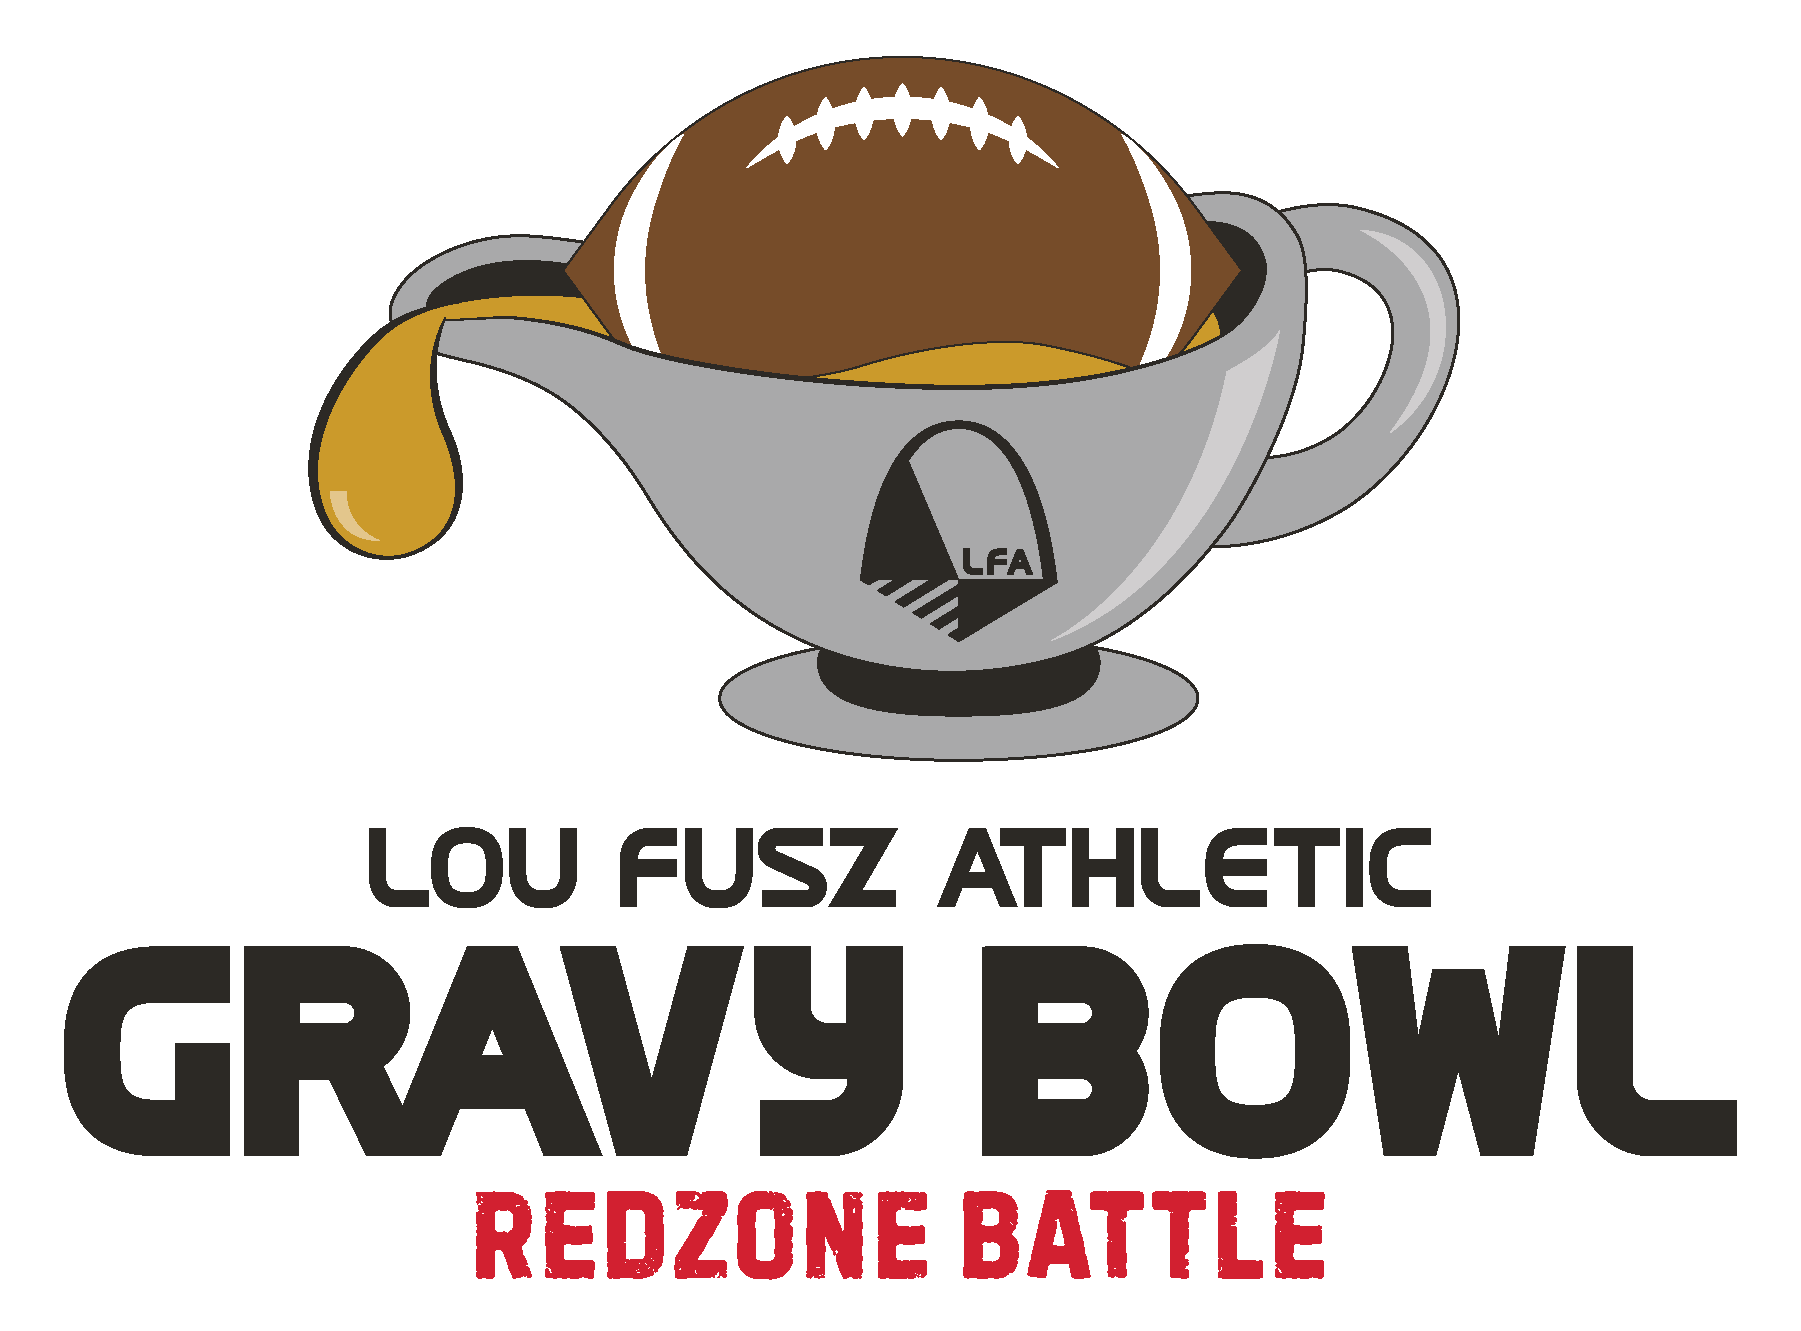 GravyBowl_RedZoneBattle-WebsiteLogo